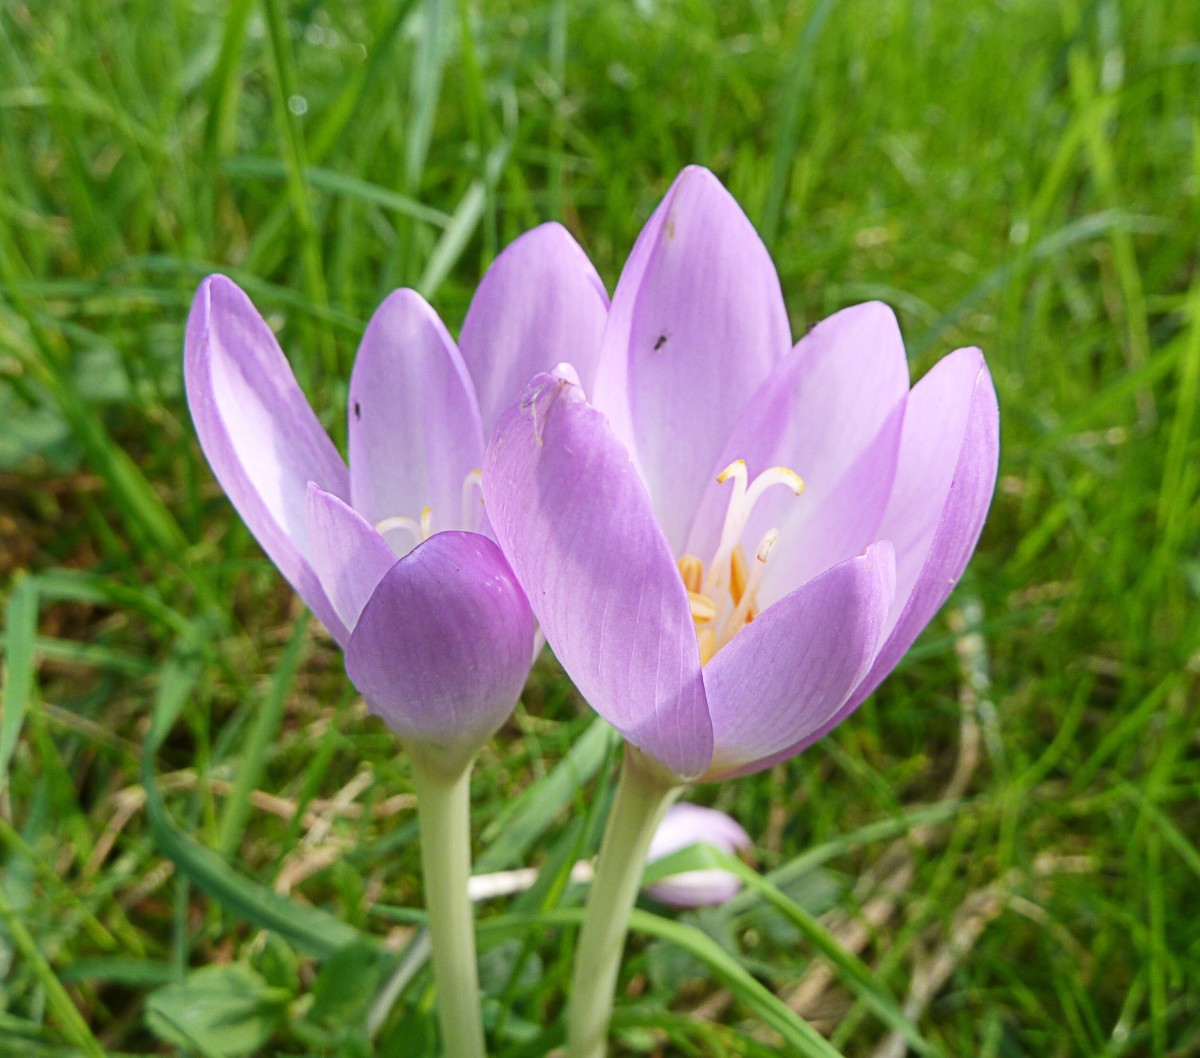 Autumn crocus in the Czech Republic